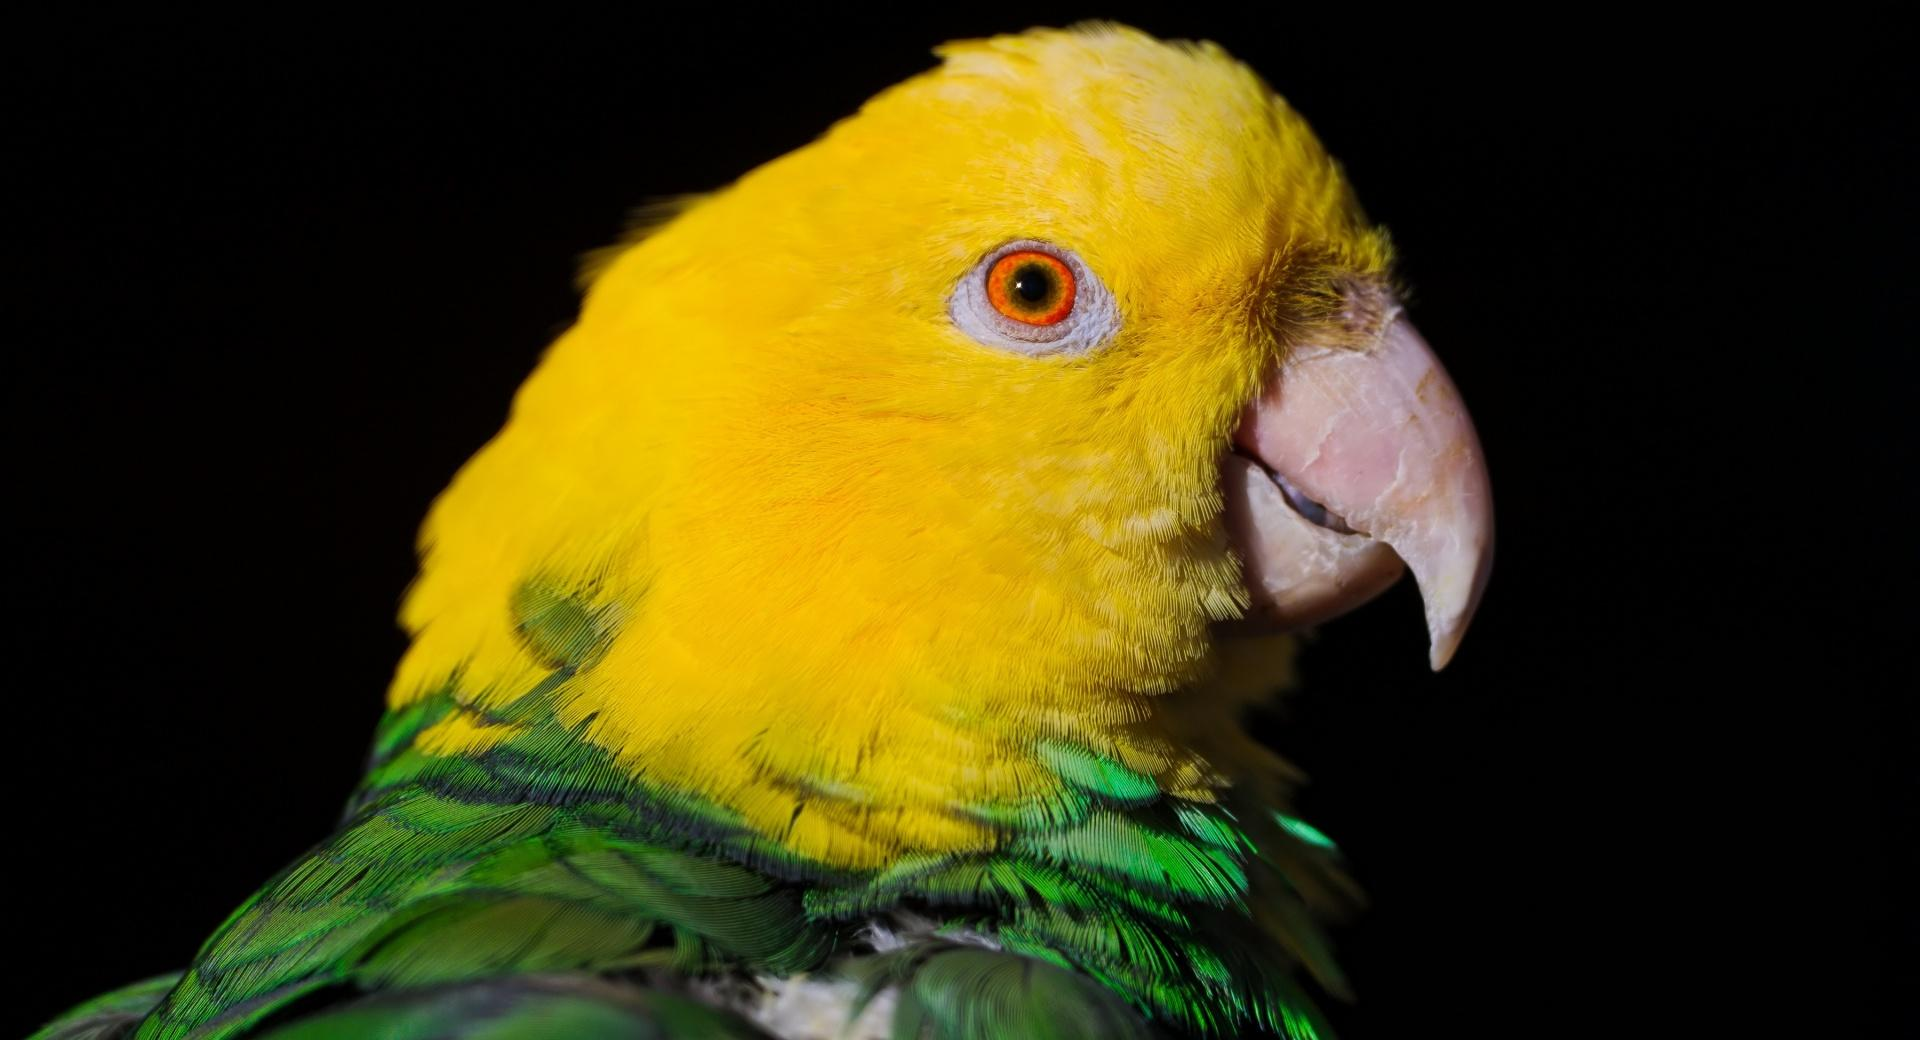 Green And Yellow Parrot wallpapers HD quality